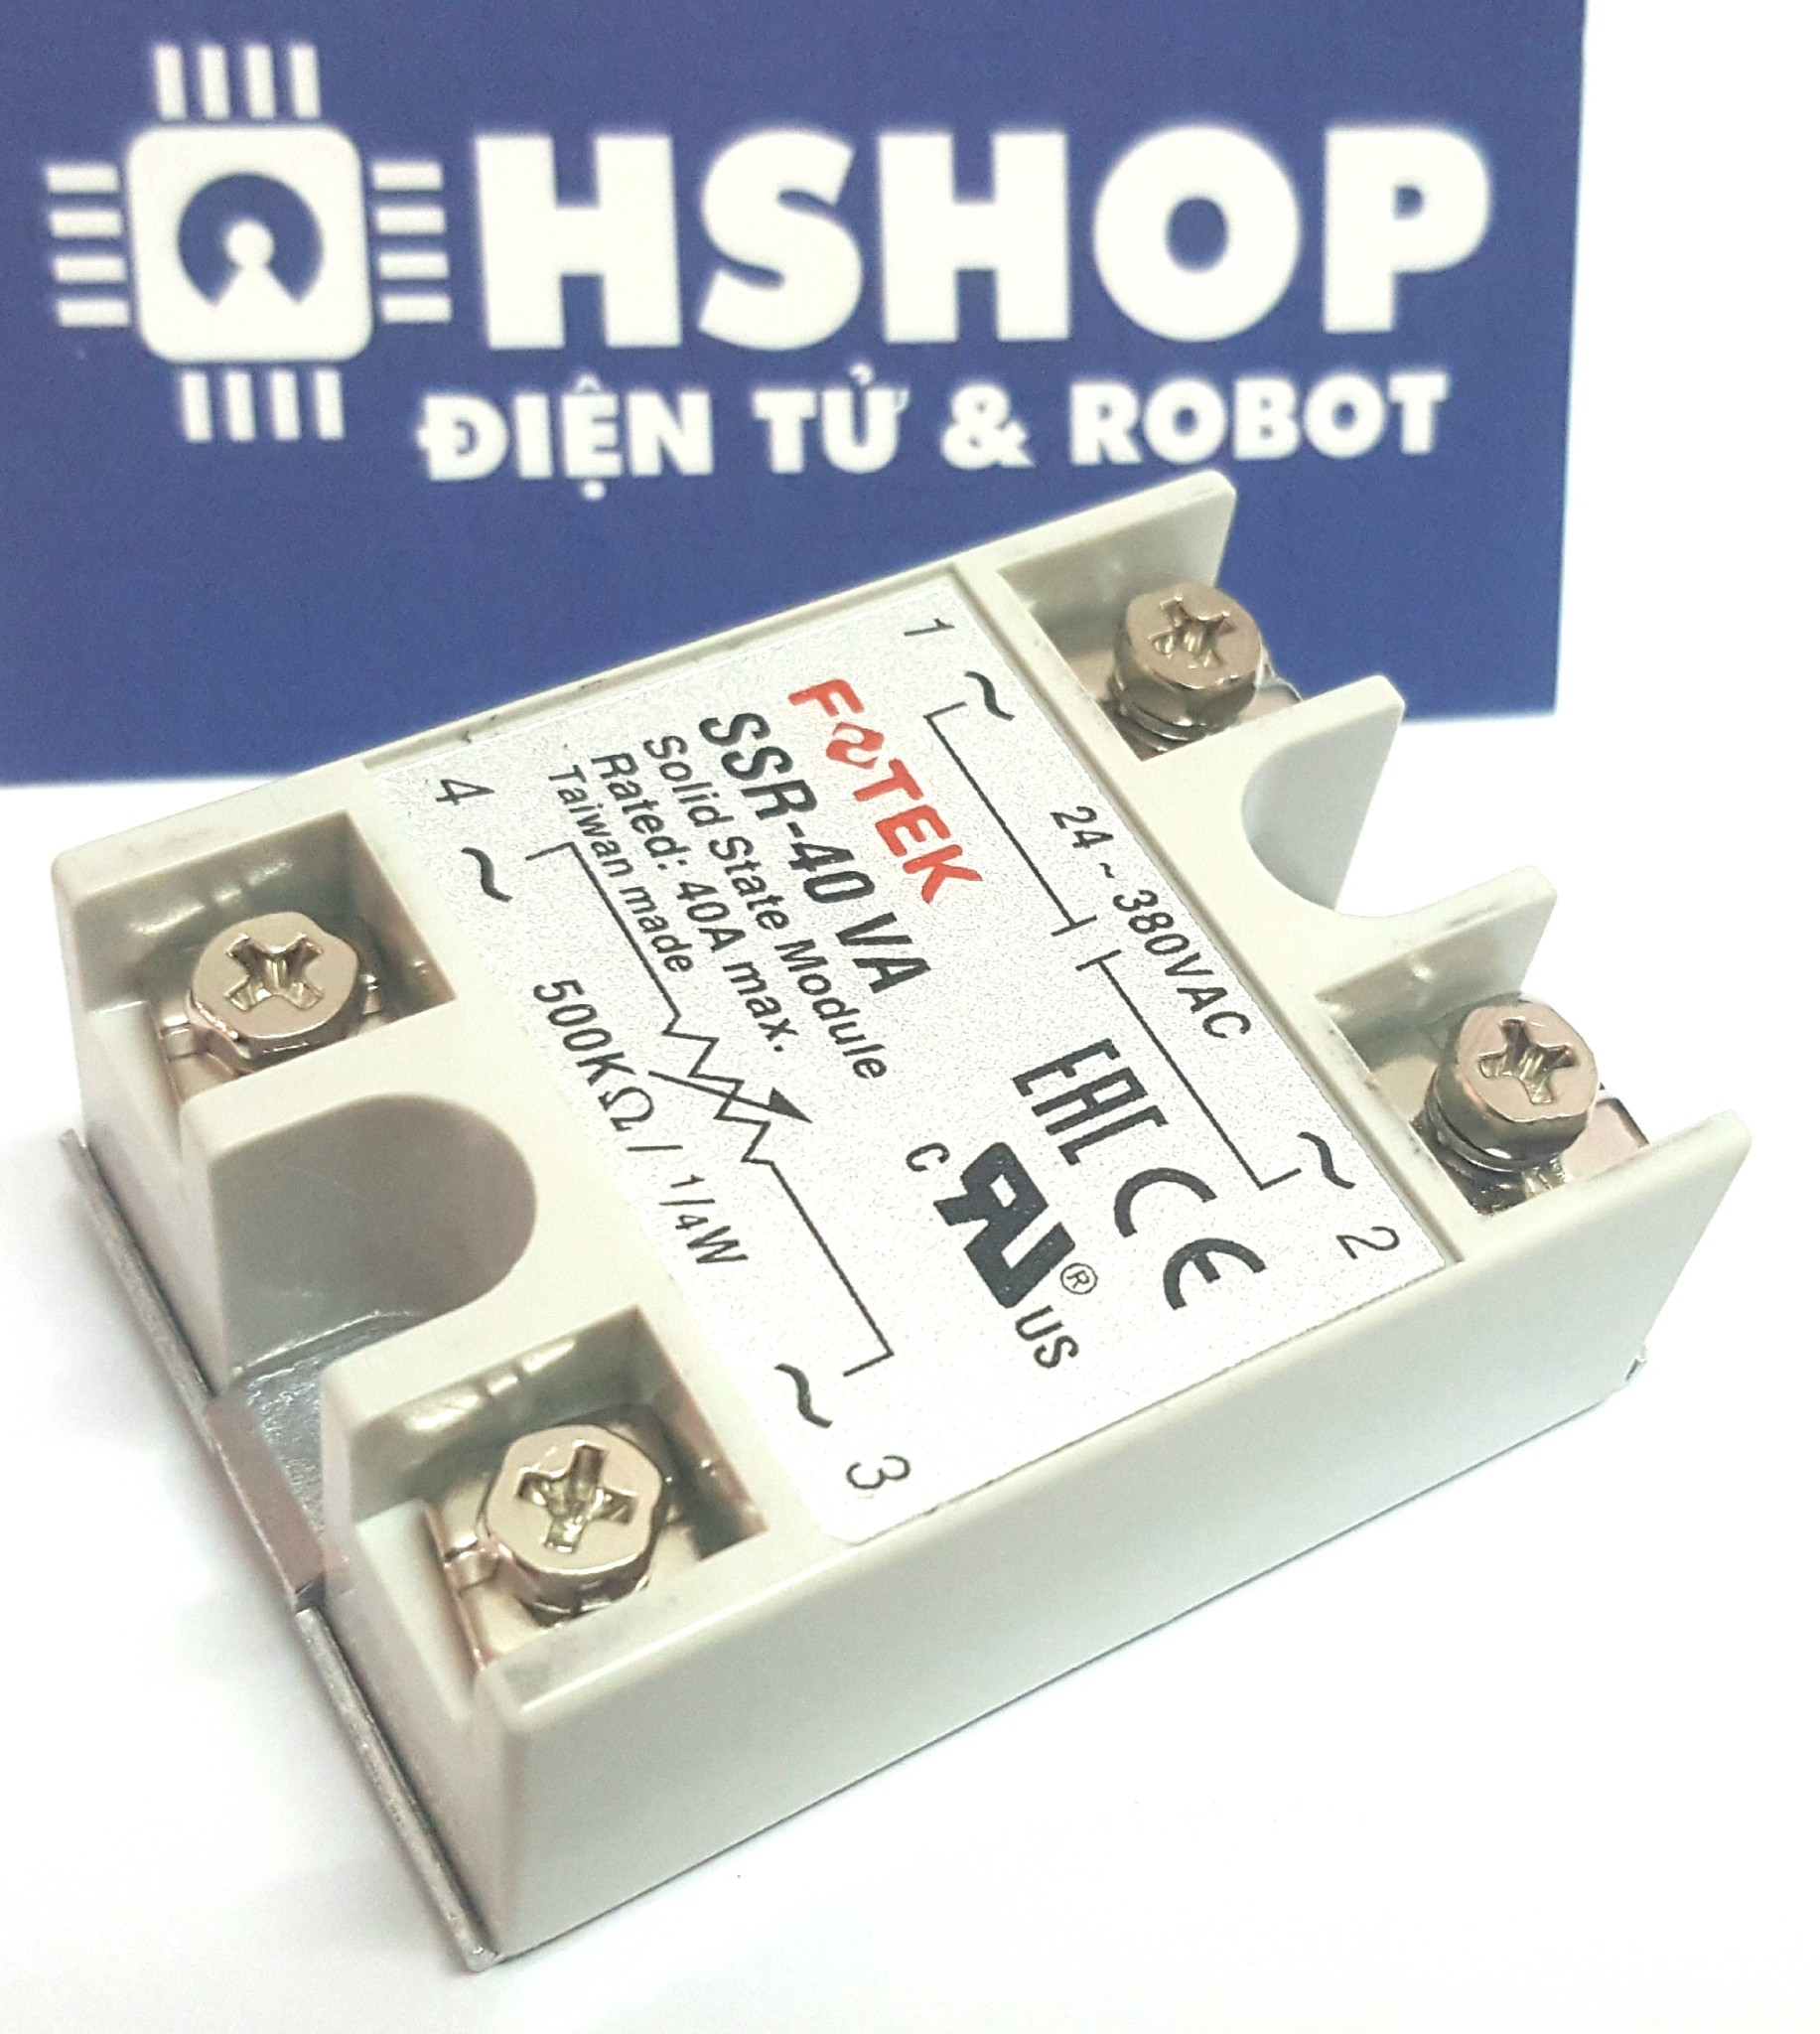 Solid State Relay Ssr 40 Va Fotek Chnh Hng In T Youtube Try Watching This Video On Youtubecom Or Enable Javascript If It Is Disabled Your Browser